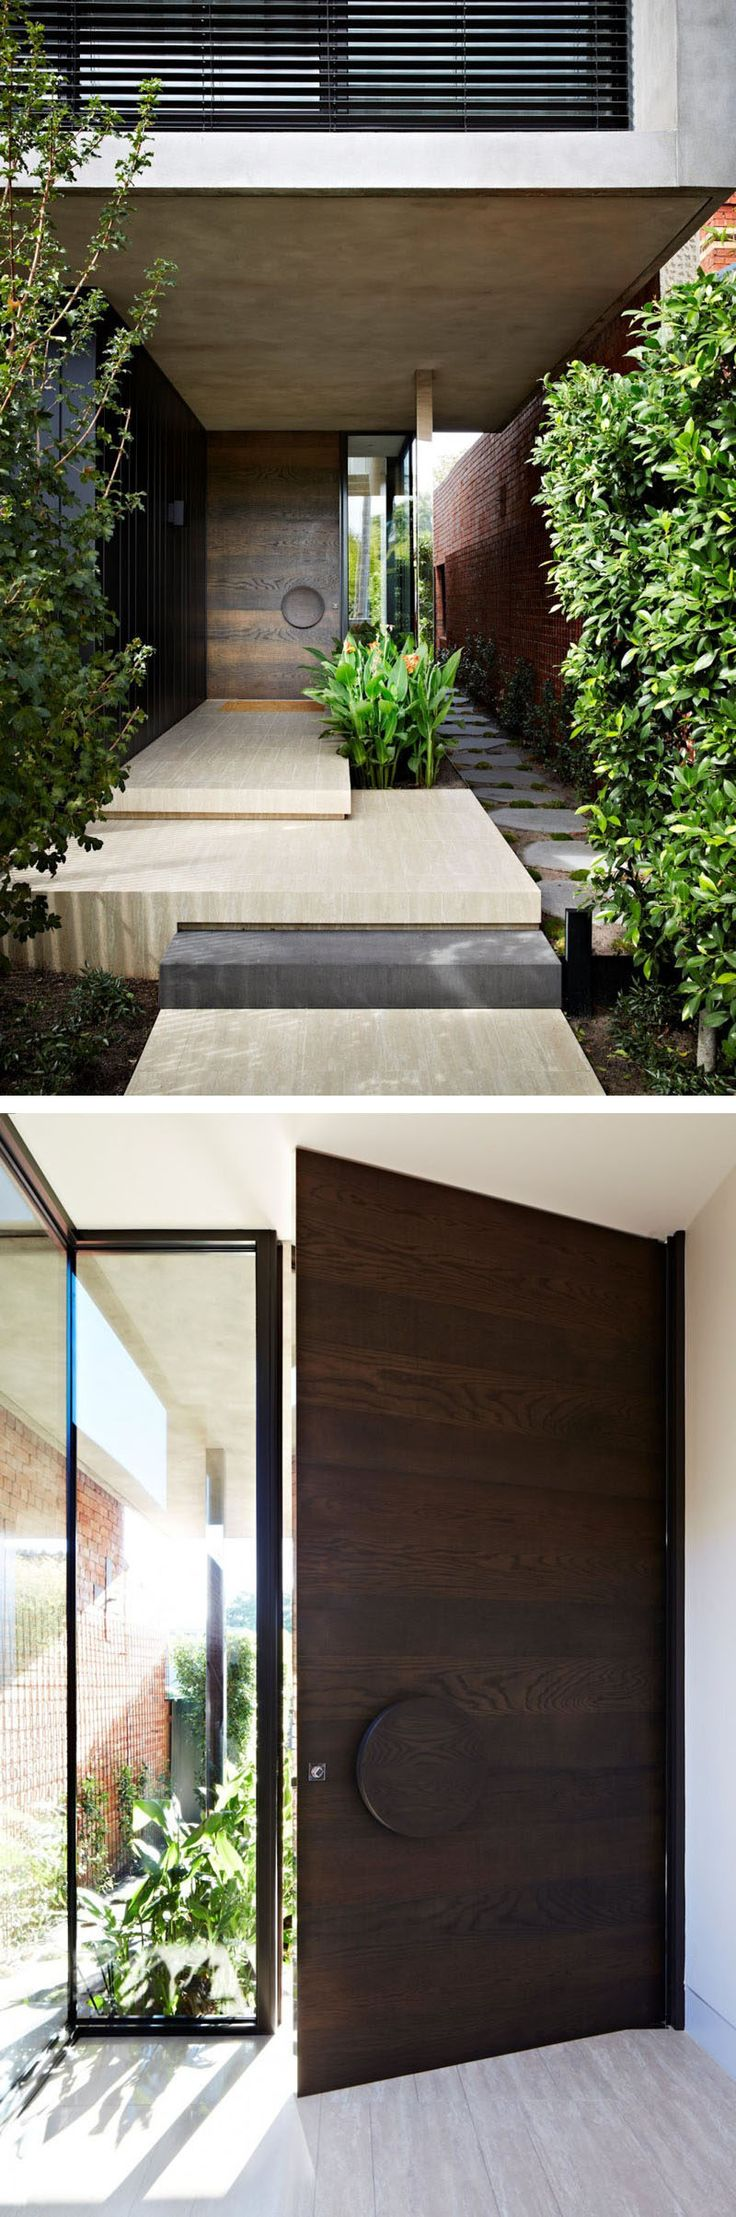 Front Door Idea – Add an oversized handle to draw attention to your front door